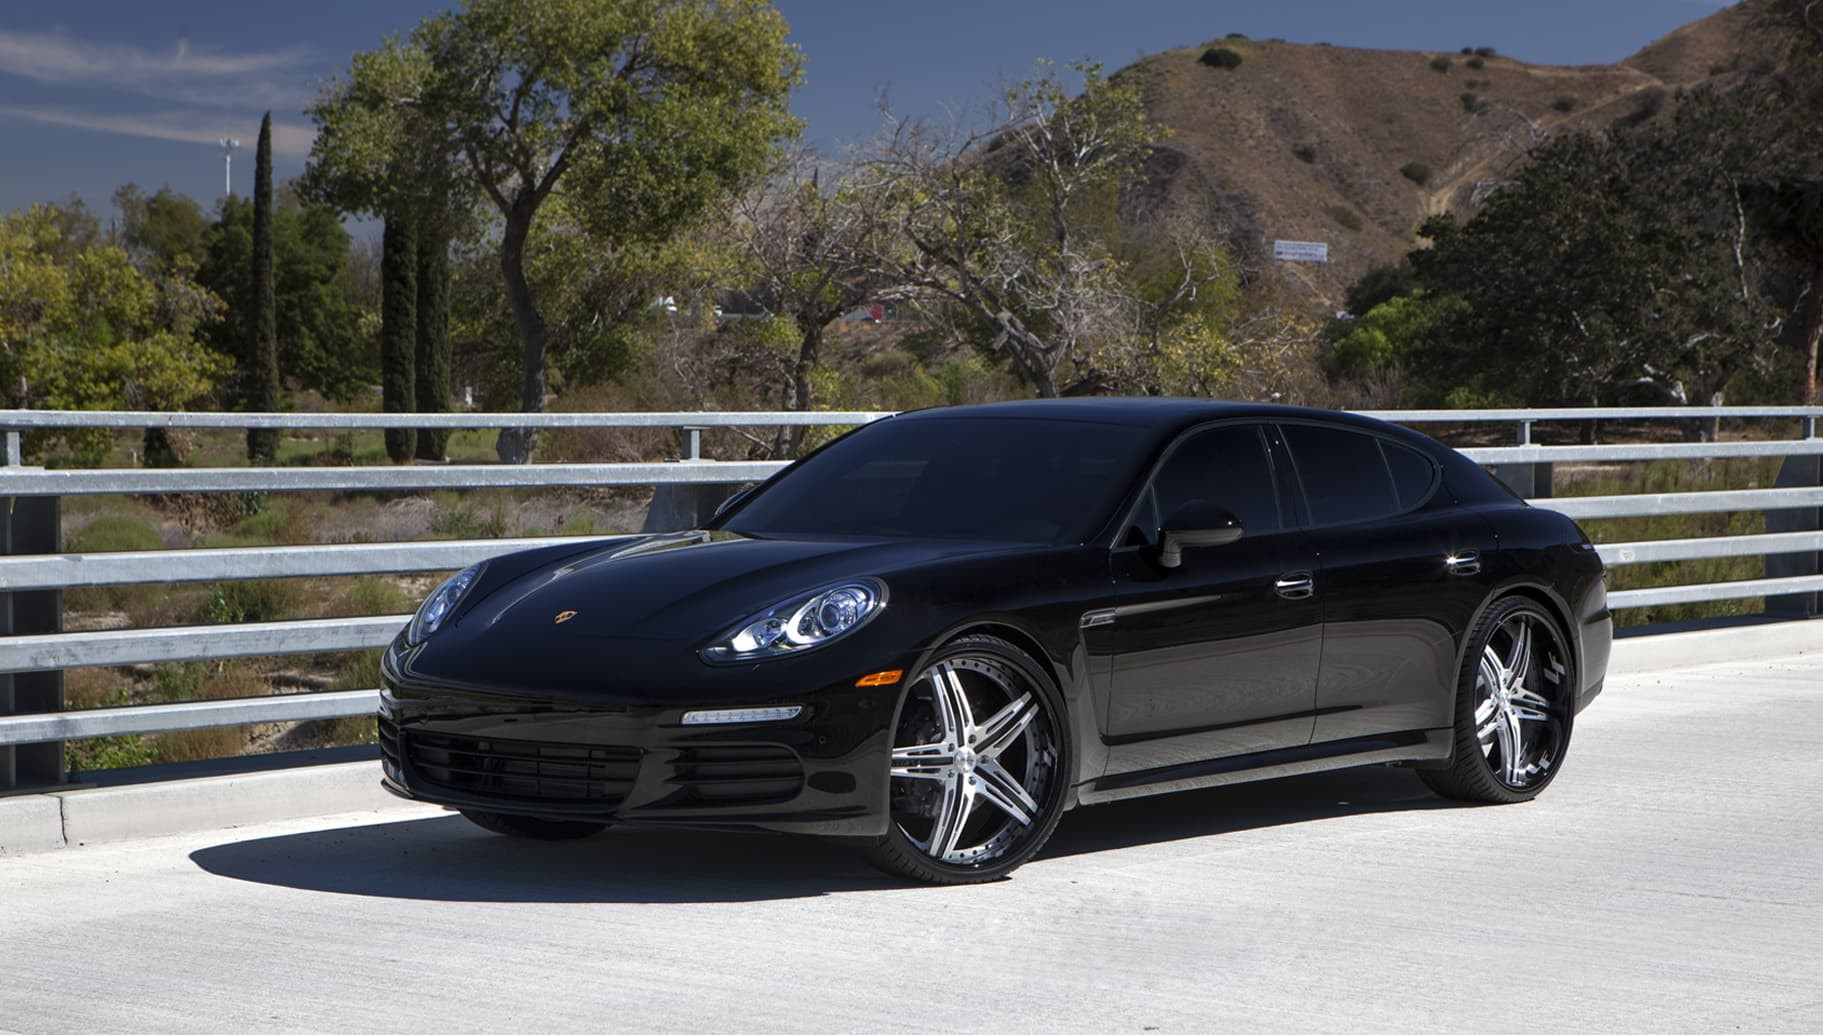 Custom LF-732 on the 2014 Porsche Panamera.